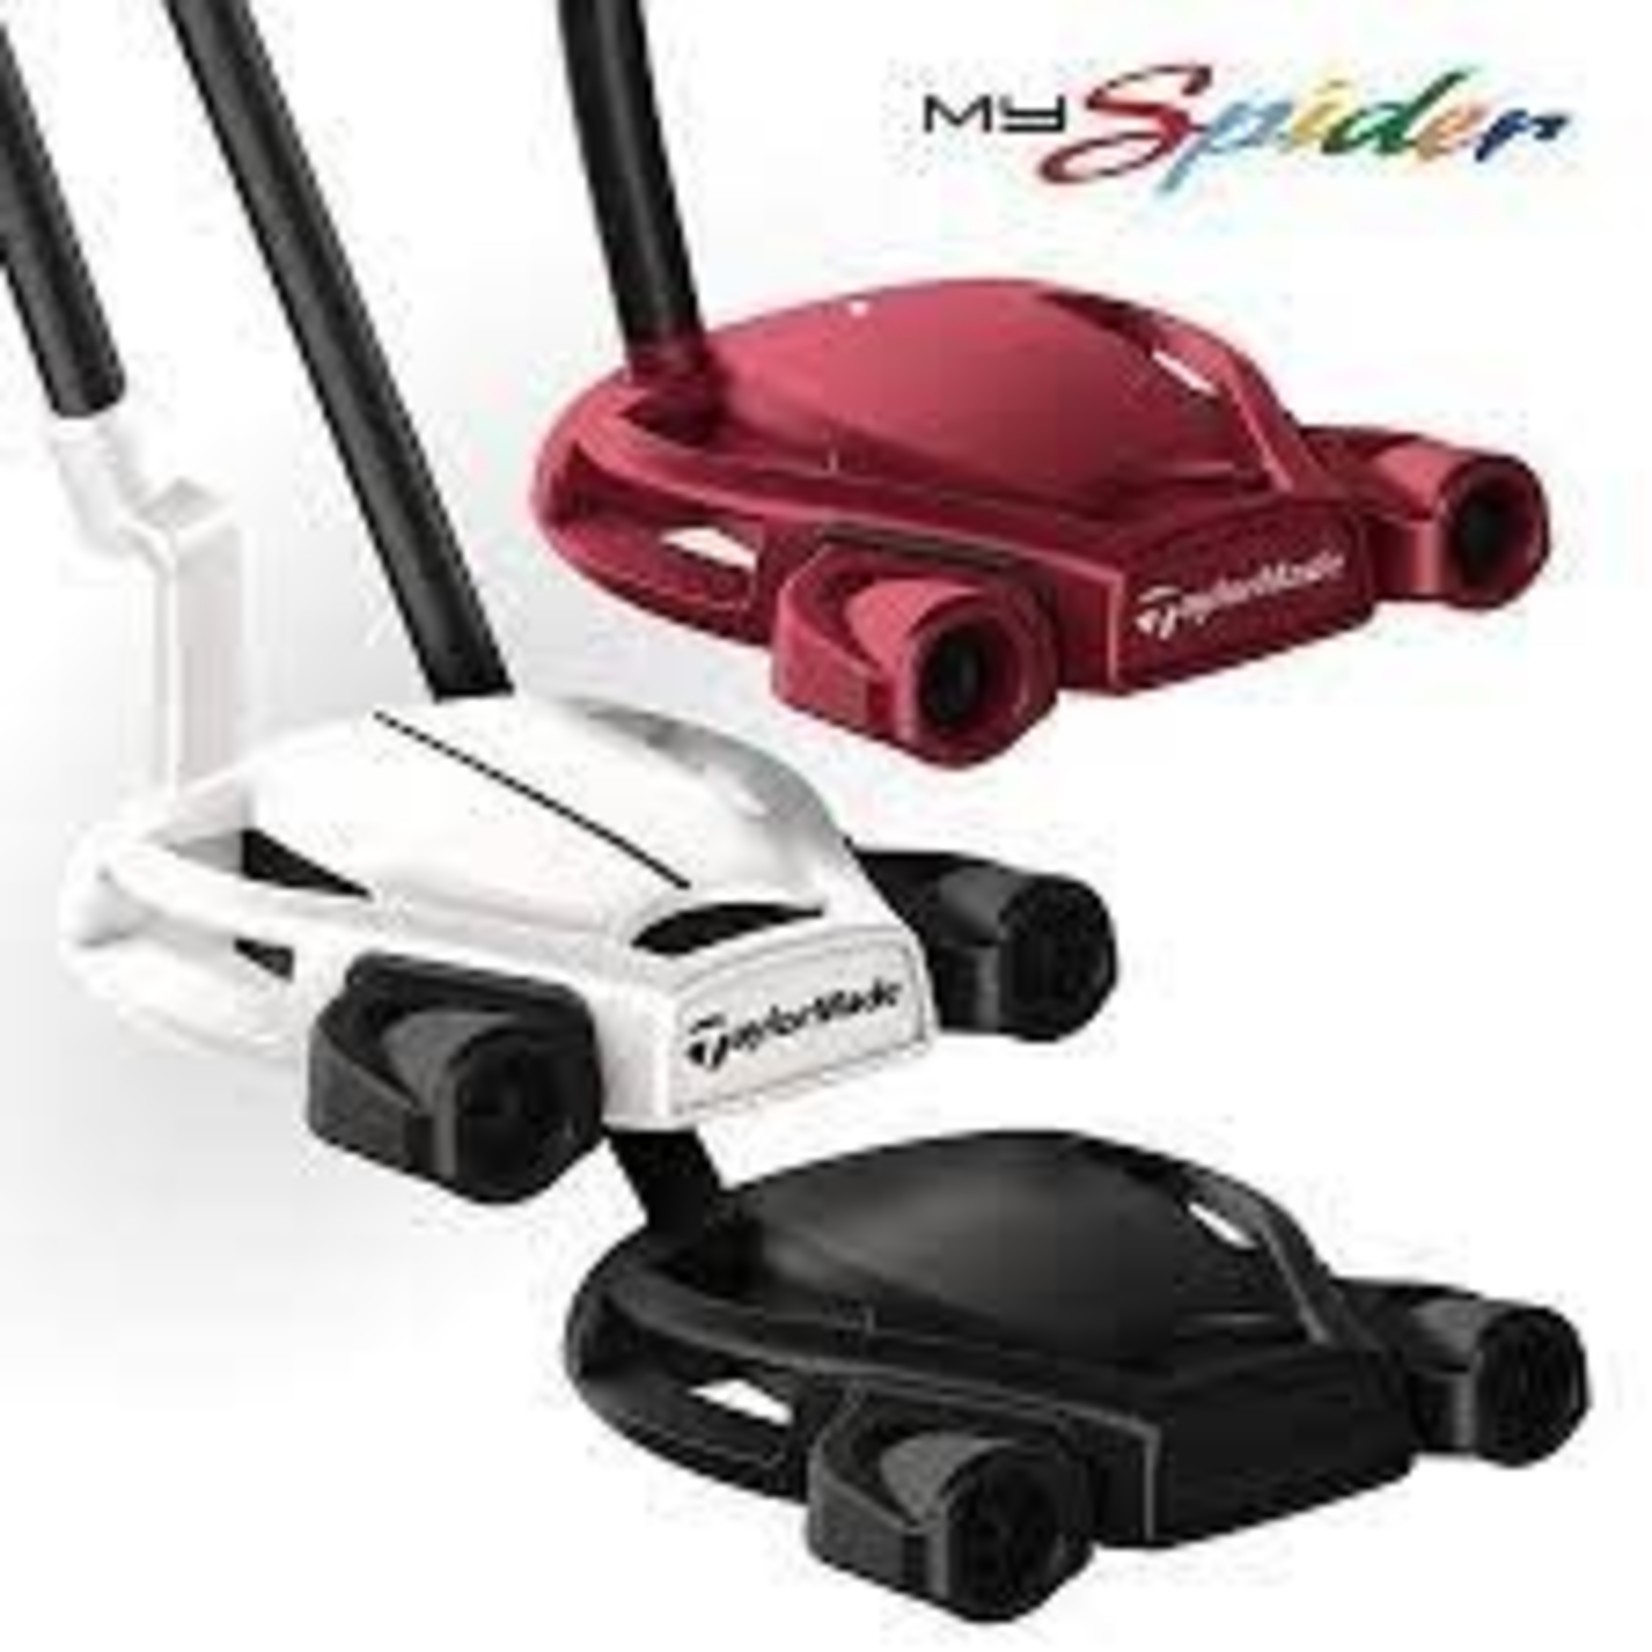 TAYLORMADE MY SPIDER TOUR